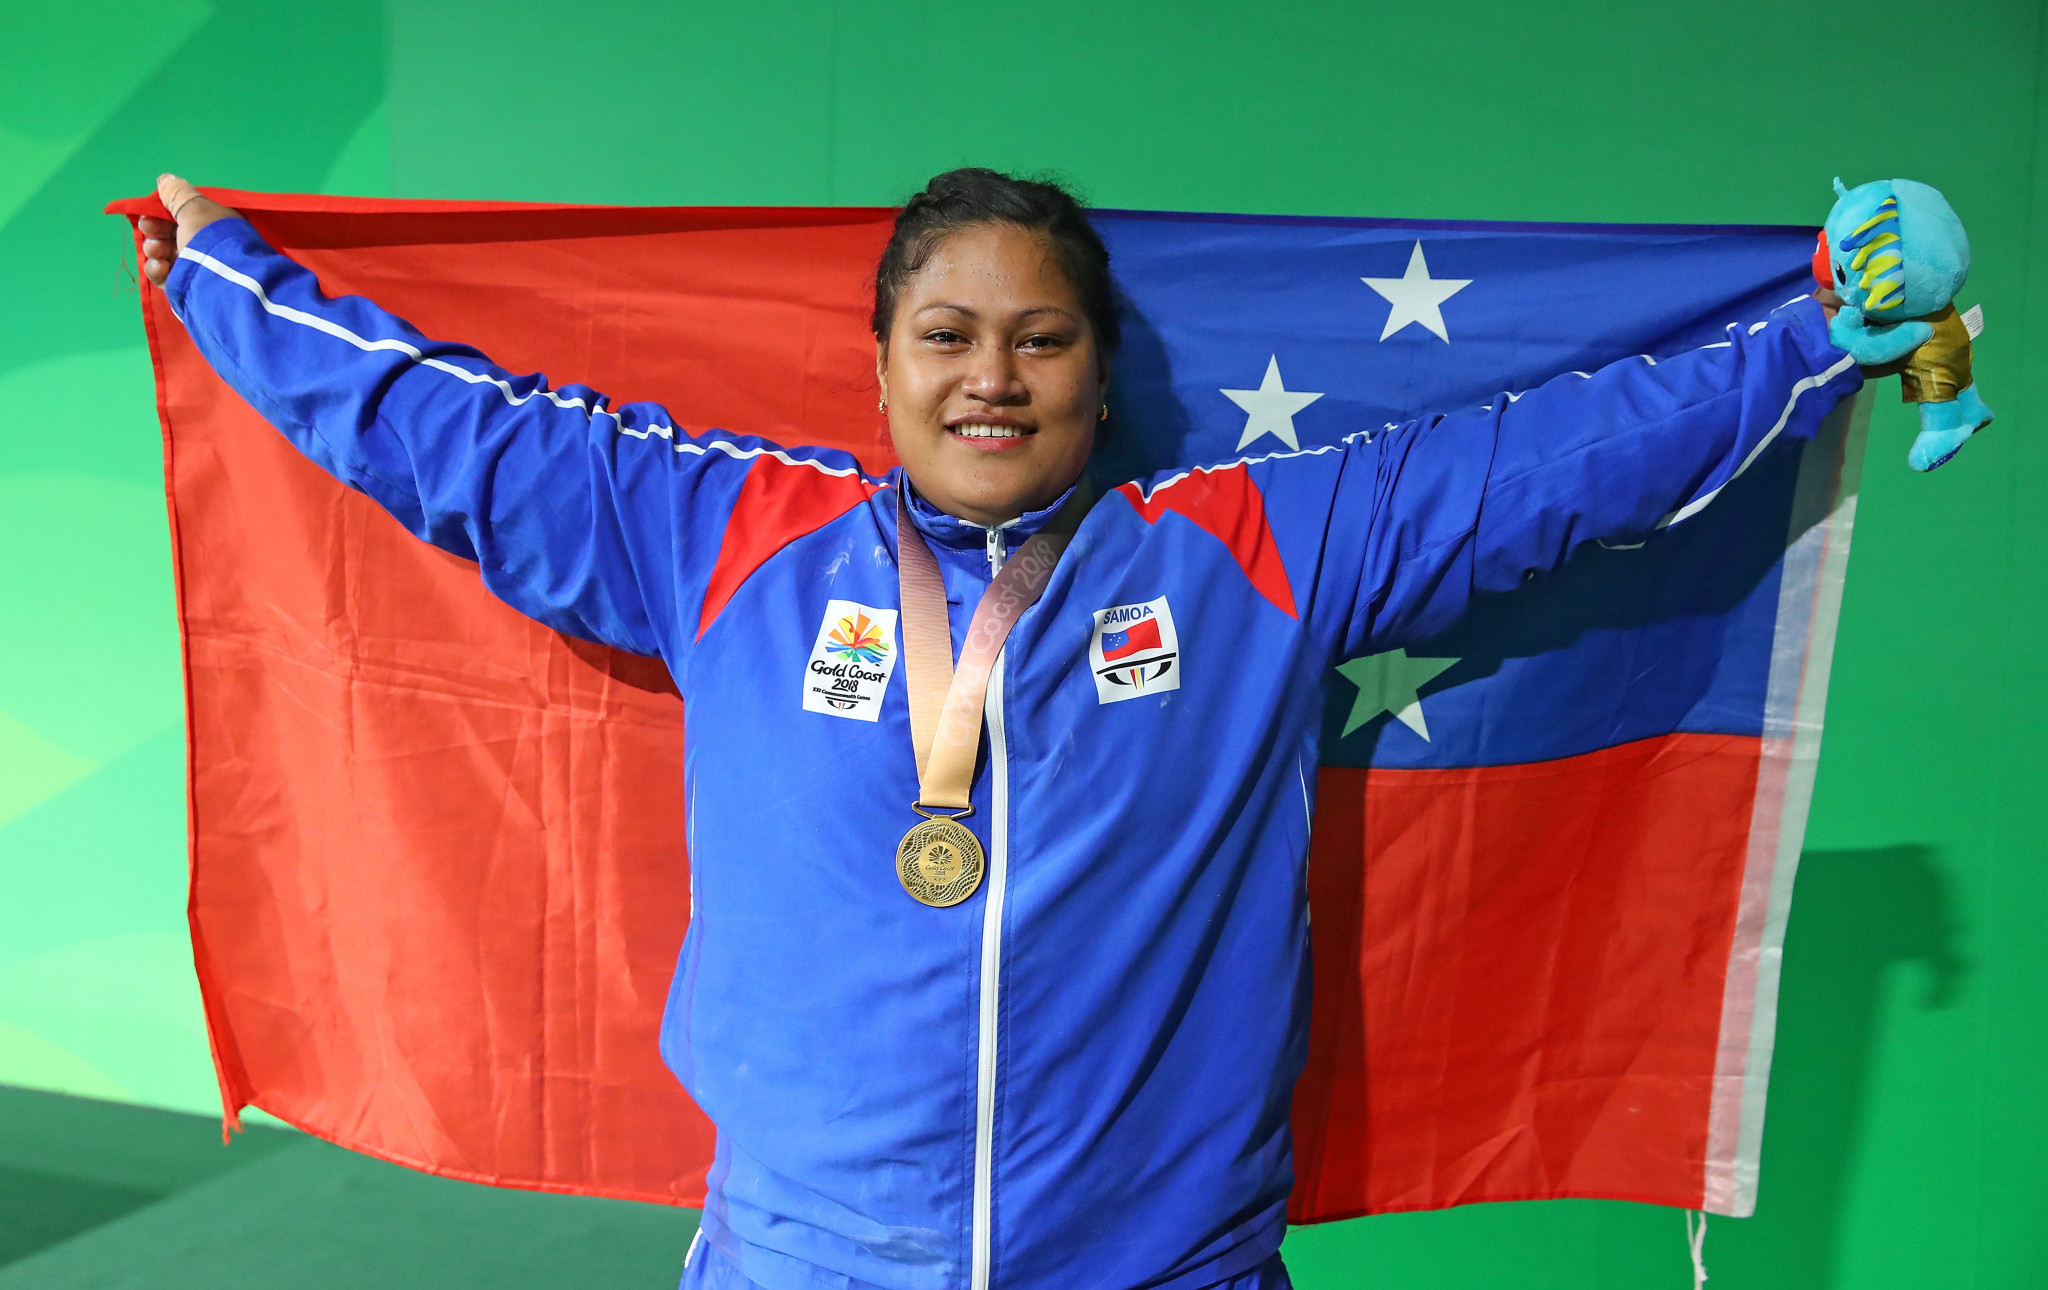 Gold medallist from the Gold Coast 2018 Commonwealth Games Feagaiga Stowers, is likely to qualify for Tokyo 2020 in the women's super heavyweight category  ©Getty Images